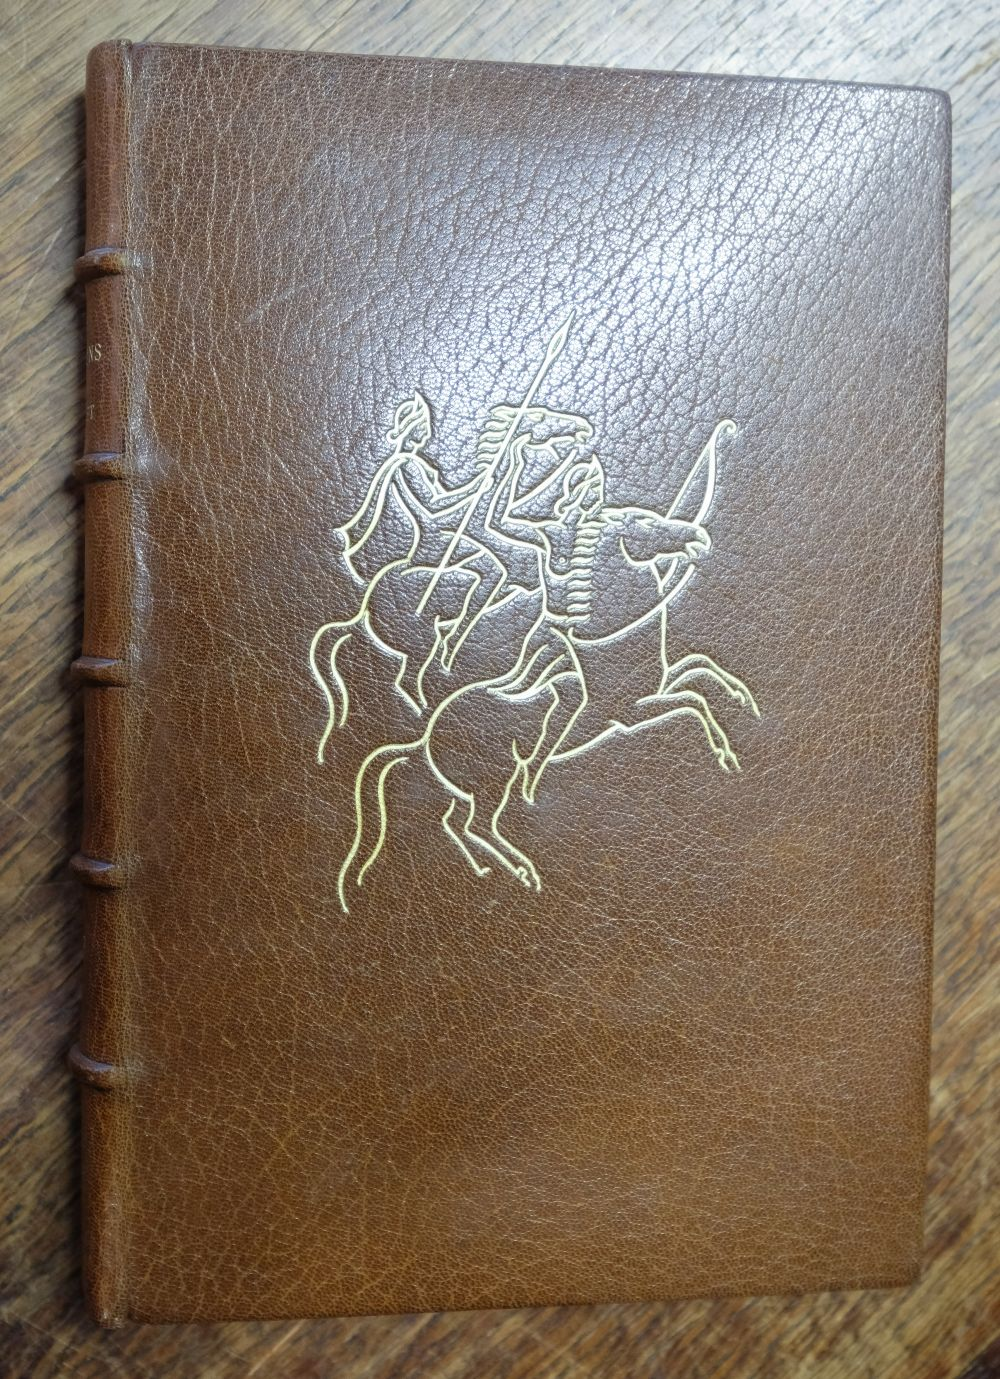 Golden Cockerel Press. The Amazons, A Novel by Ivor Bannet, 1948, signed in special binding - Image 2 of 8